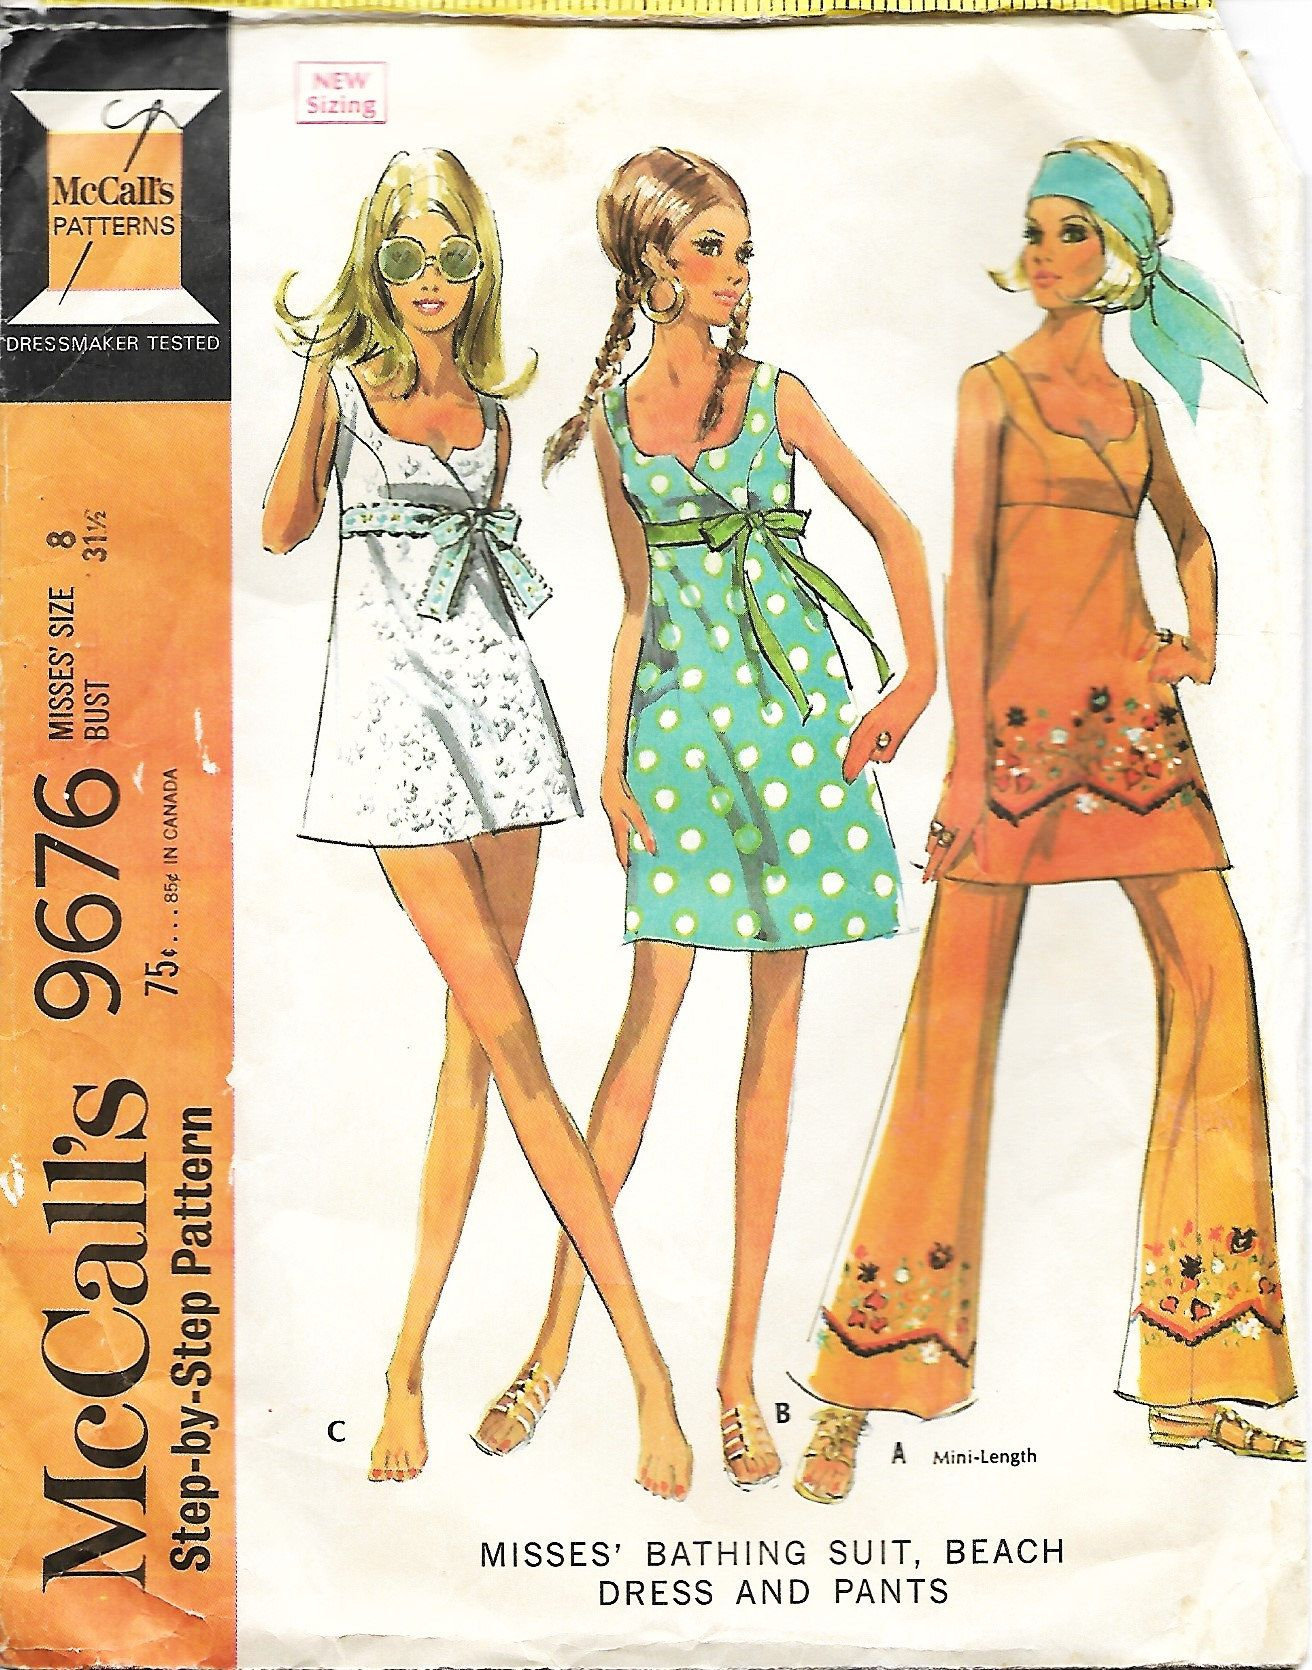 aea94c4d7f 1960's McCall's 9676, Misses Bathing Suit, Beach Dress And Pants Sewing  Pattern, Size 8, Bust 31 1/2 by DawnsDesignBoutique on Etsy